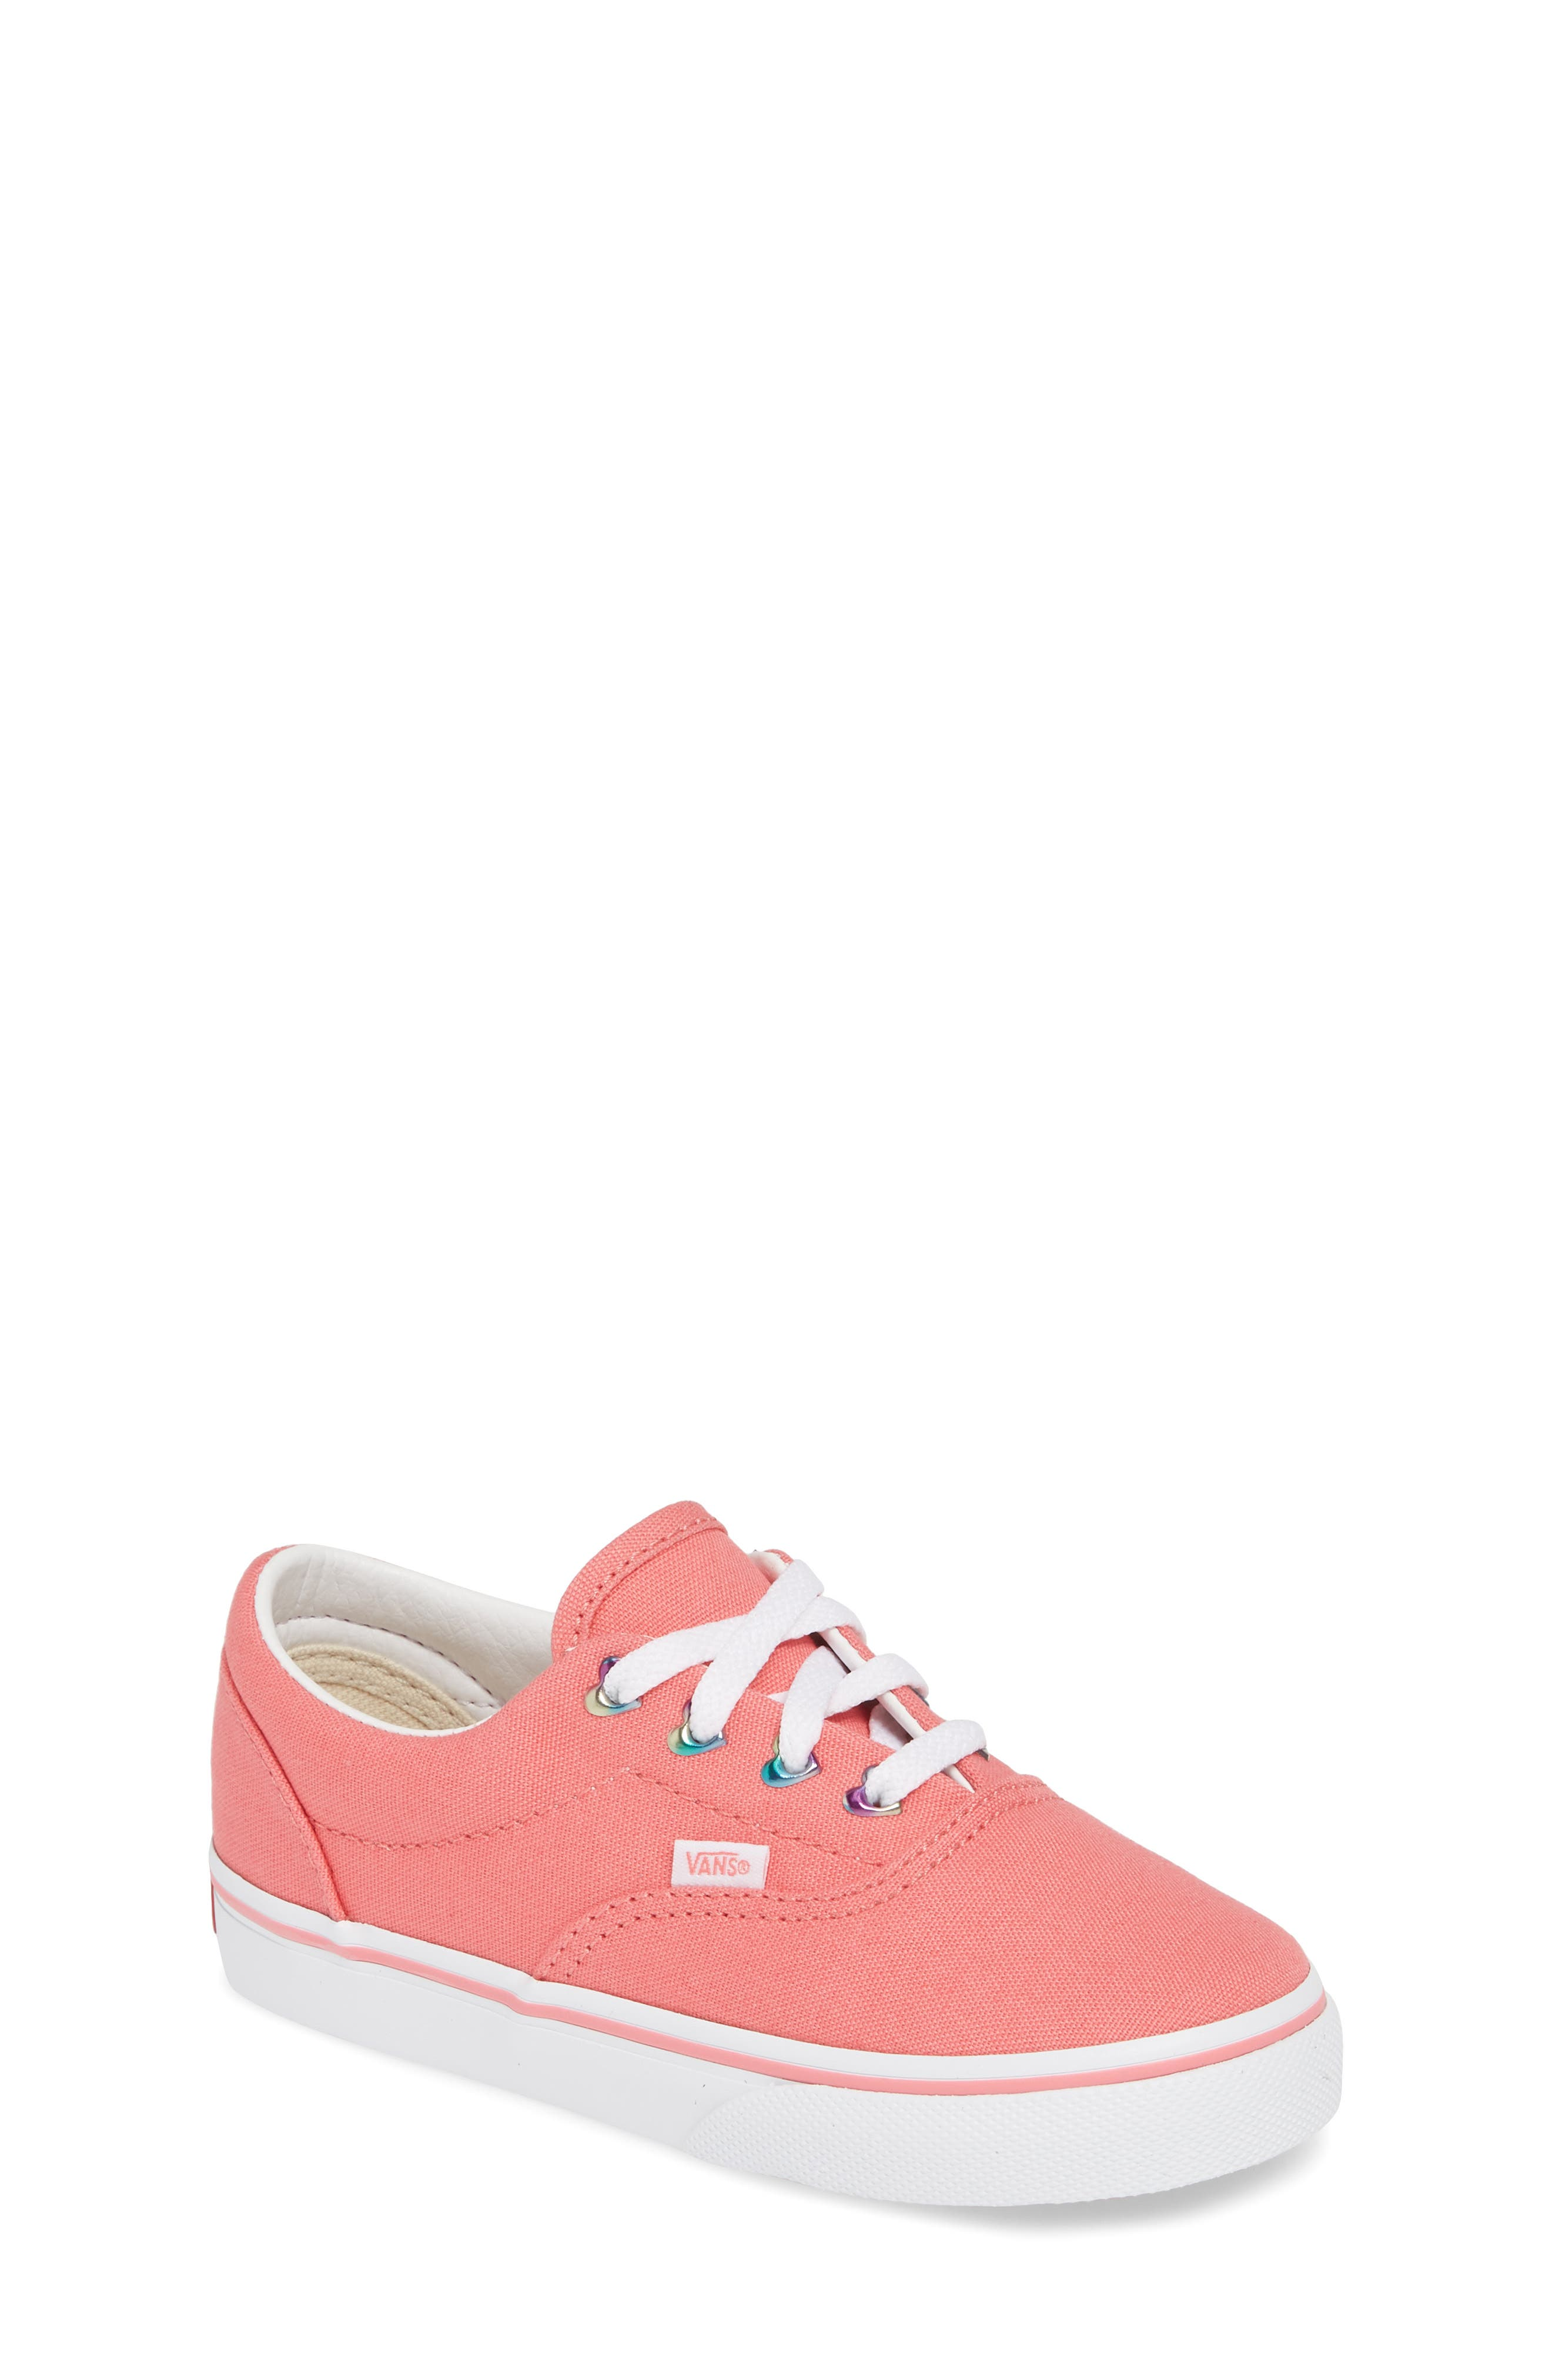 4c24909b320e02 Vans - Girls Sneakers   Athletic Shoes - Kids  Shoes and Boots to ...